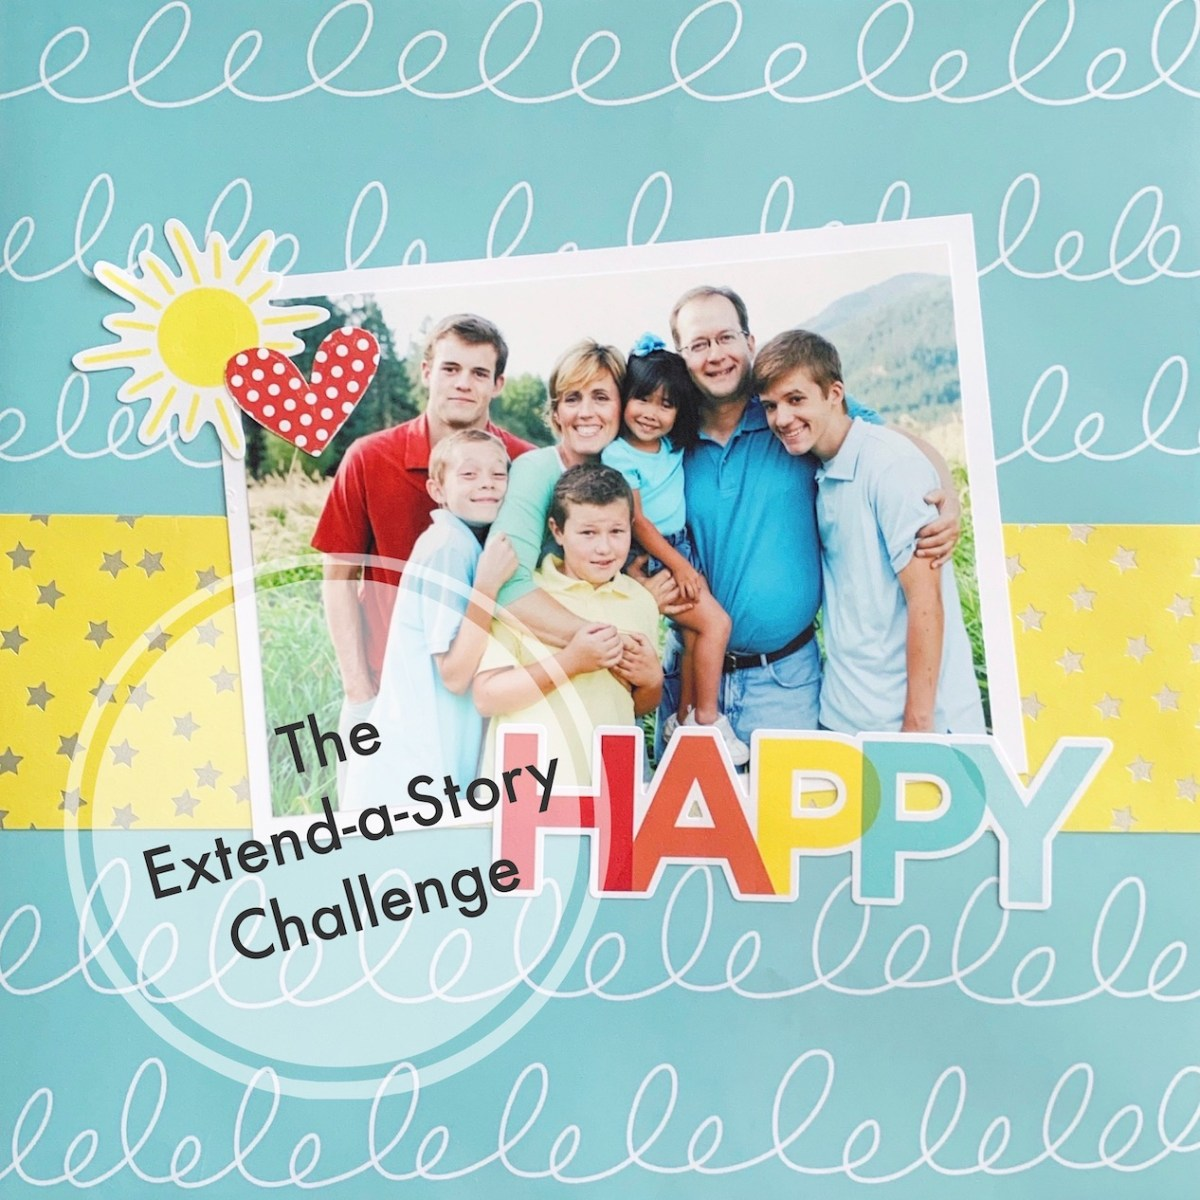 Extend a Story Challenge #ctmh #closetomyheart #storybystacy #stacyjulian #extendedstory #storytelling #memorykeeping #scrapbooking